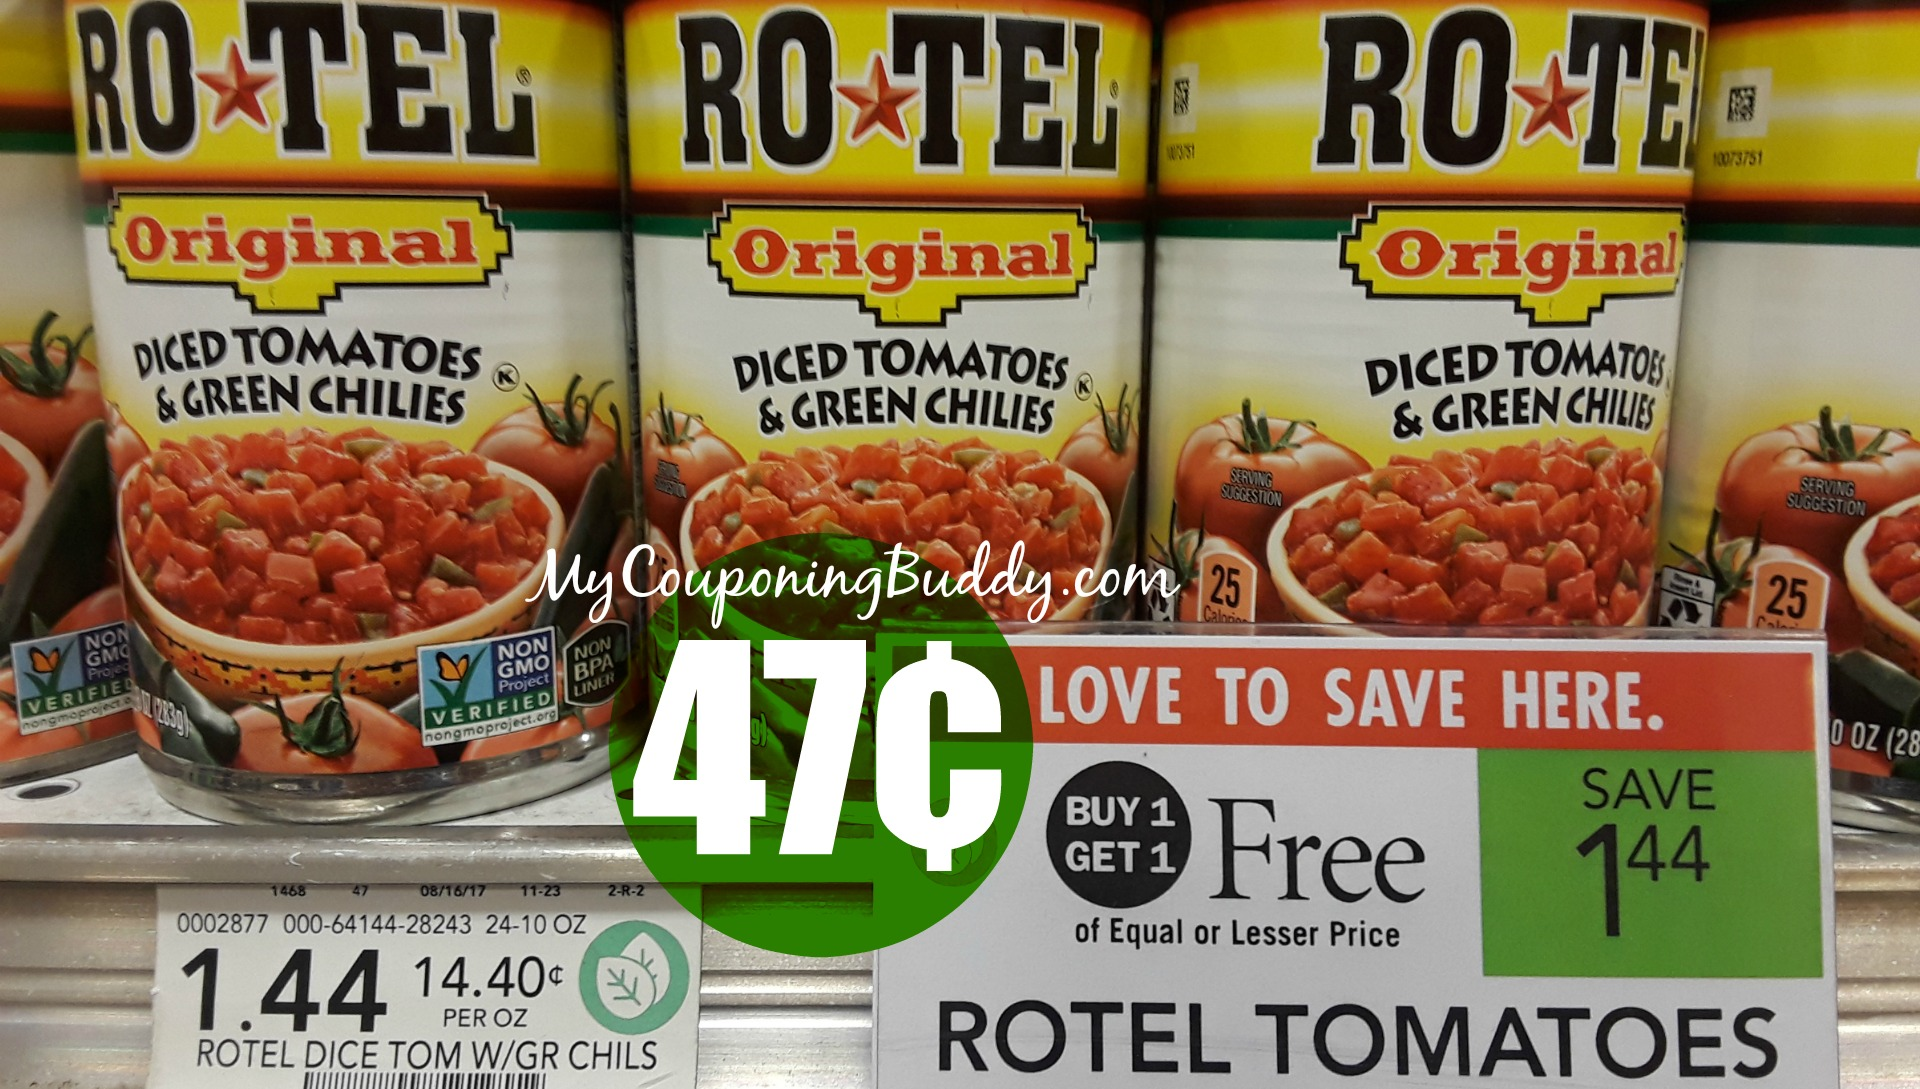 Rotel Tomatoes 47 At Publix My Publix Coupon Buddy